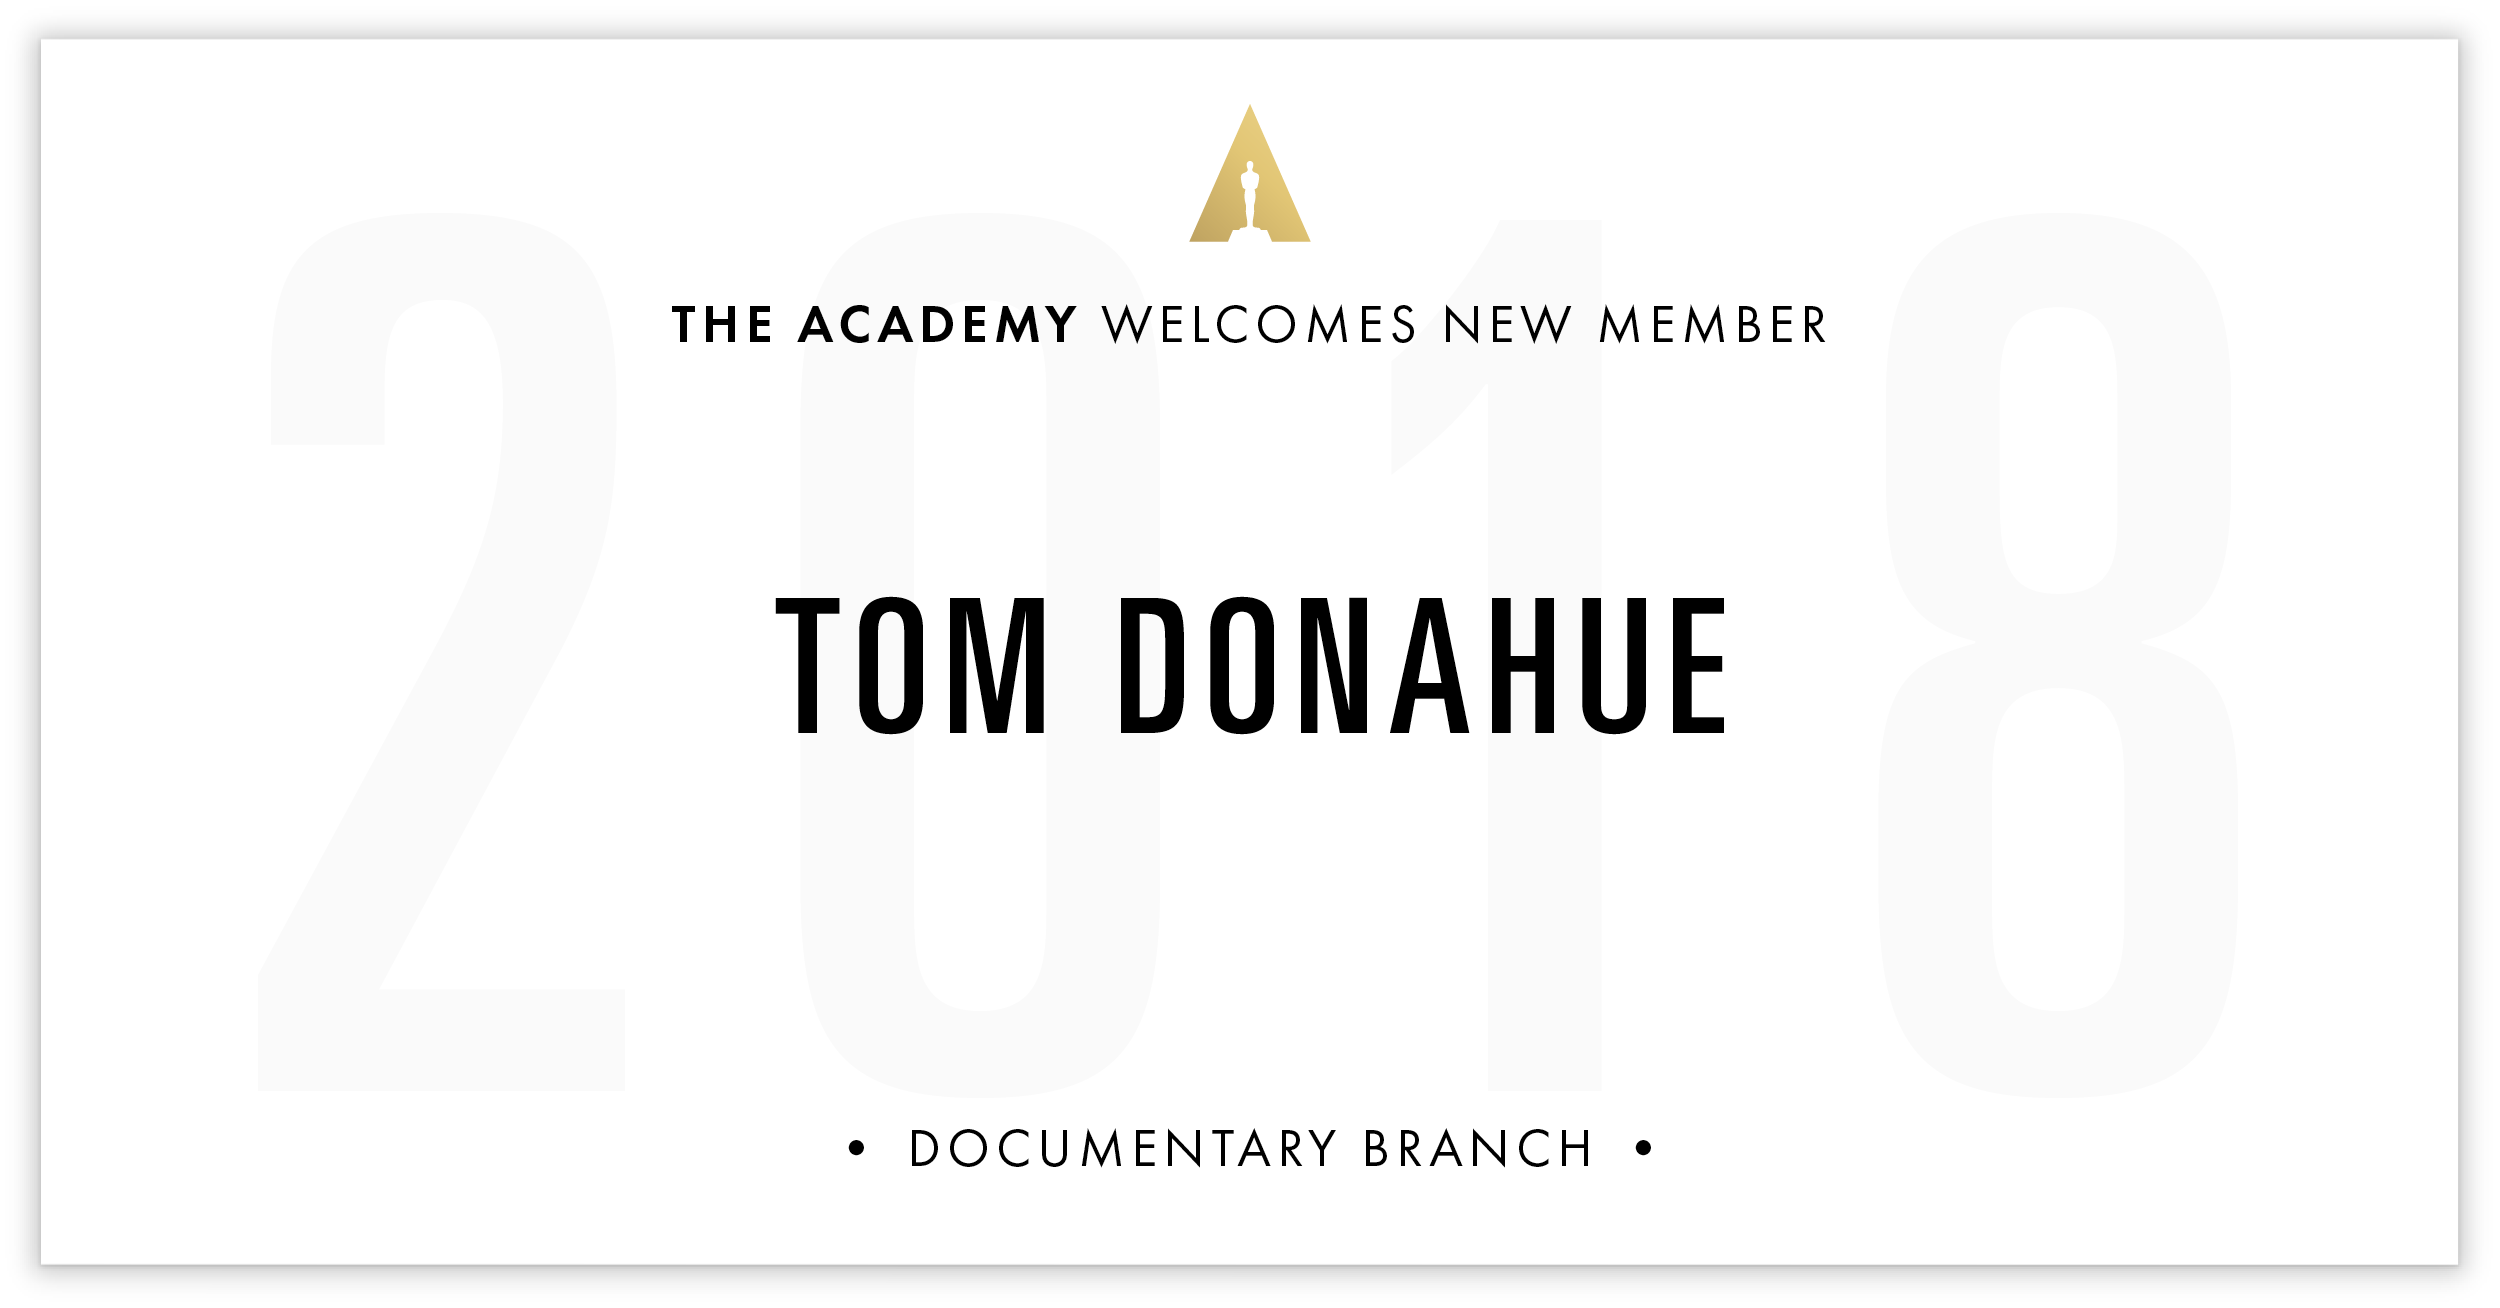 Tom Donahue is invited!